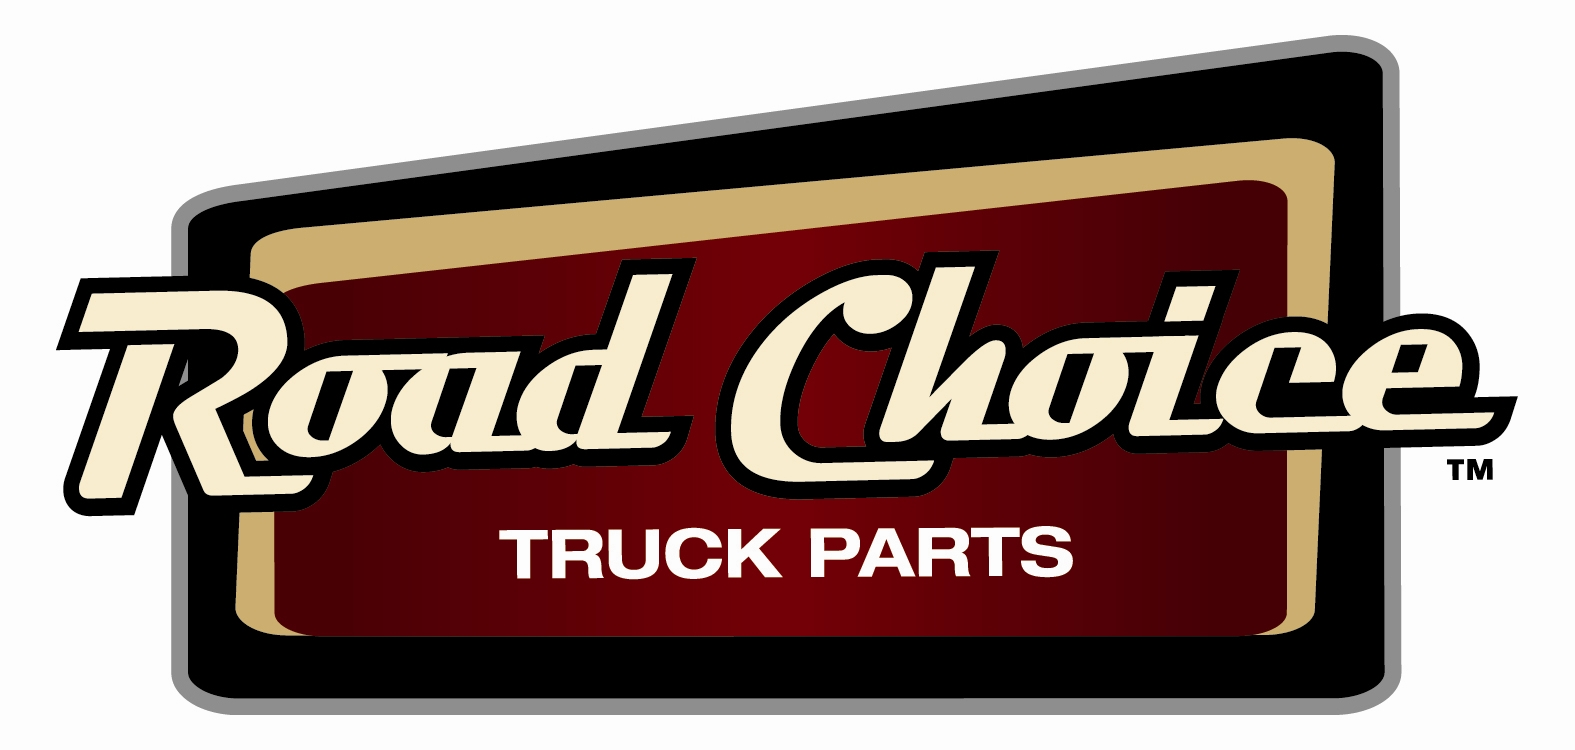 Road Choice Truck Parts Winnipeg